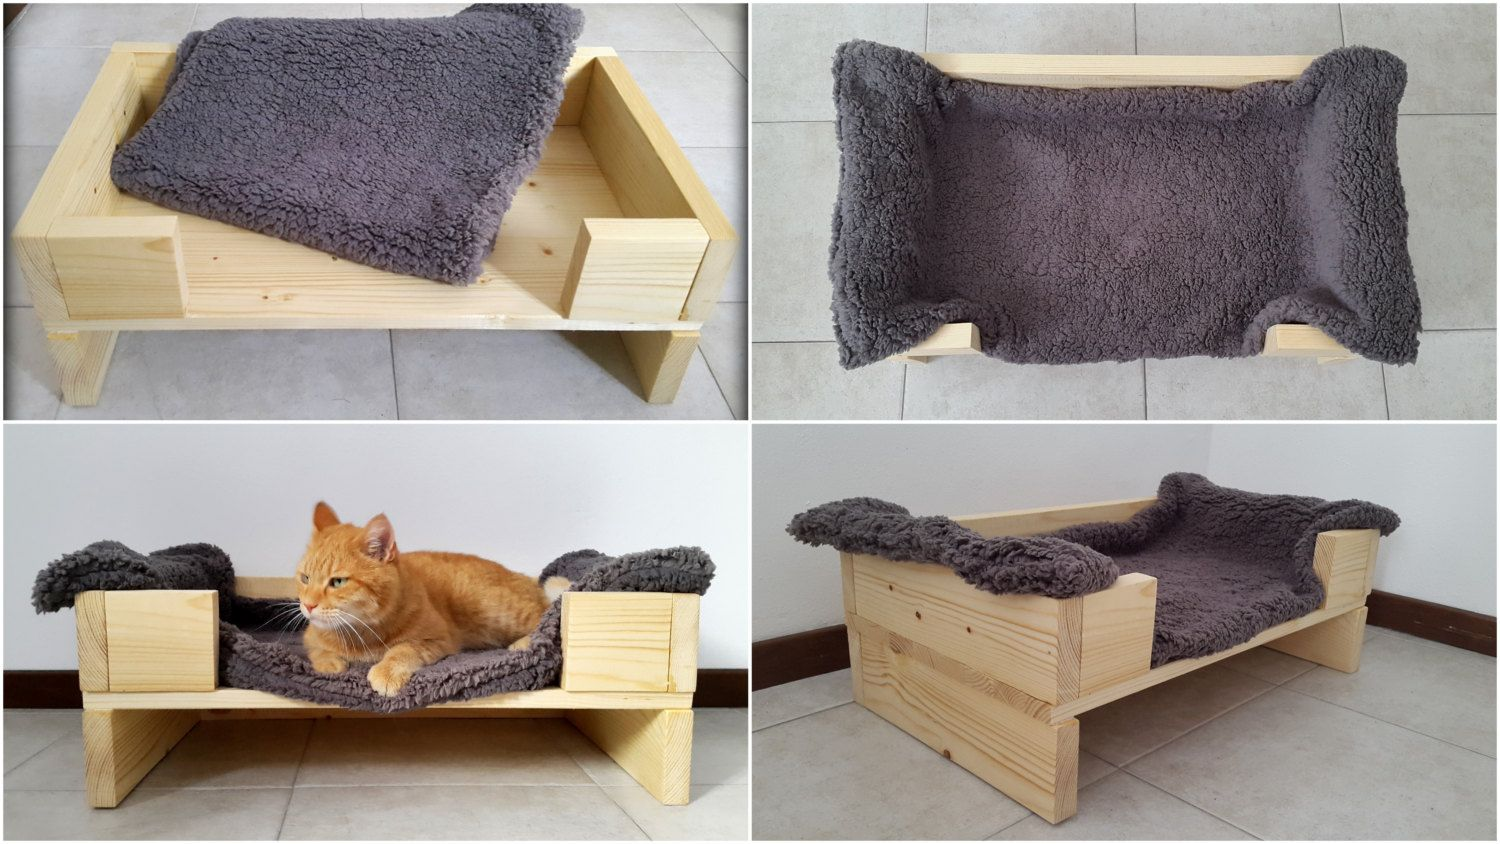 small dog furniture. Wood Pet Bed, Furniture, Cat Dog Bed Made Of Recycled Spruce With A Super Soft Blanket Included Small Furniture R